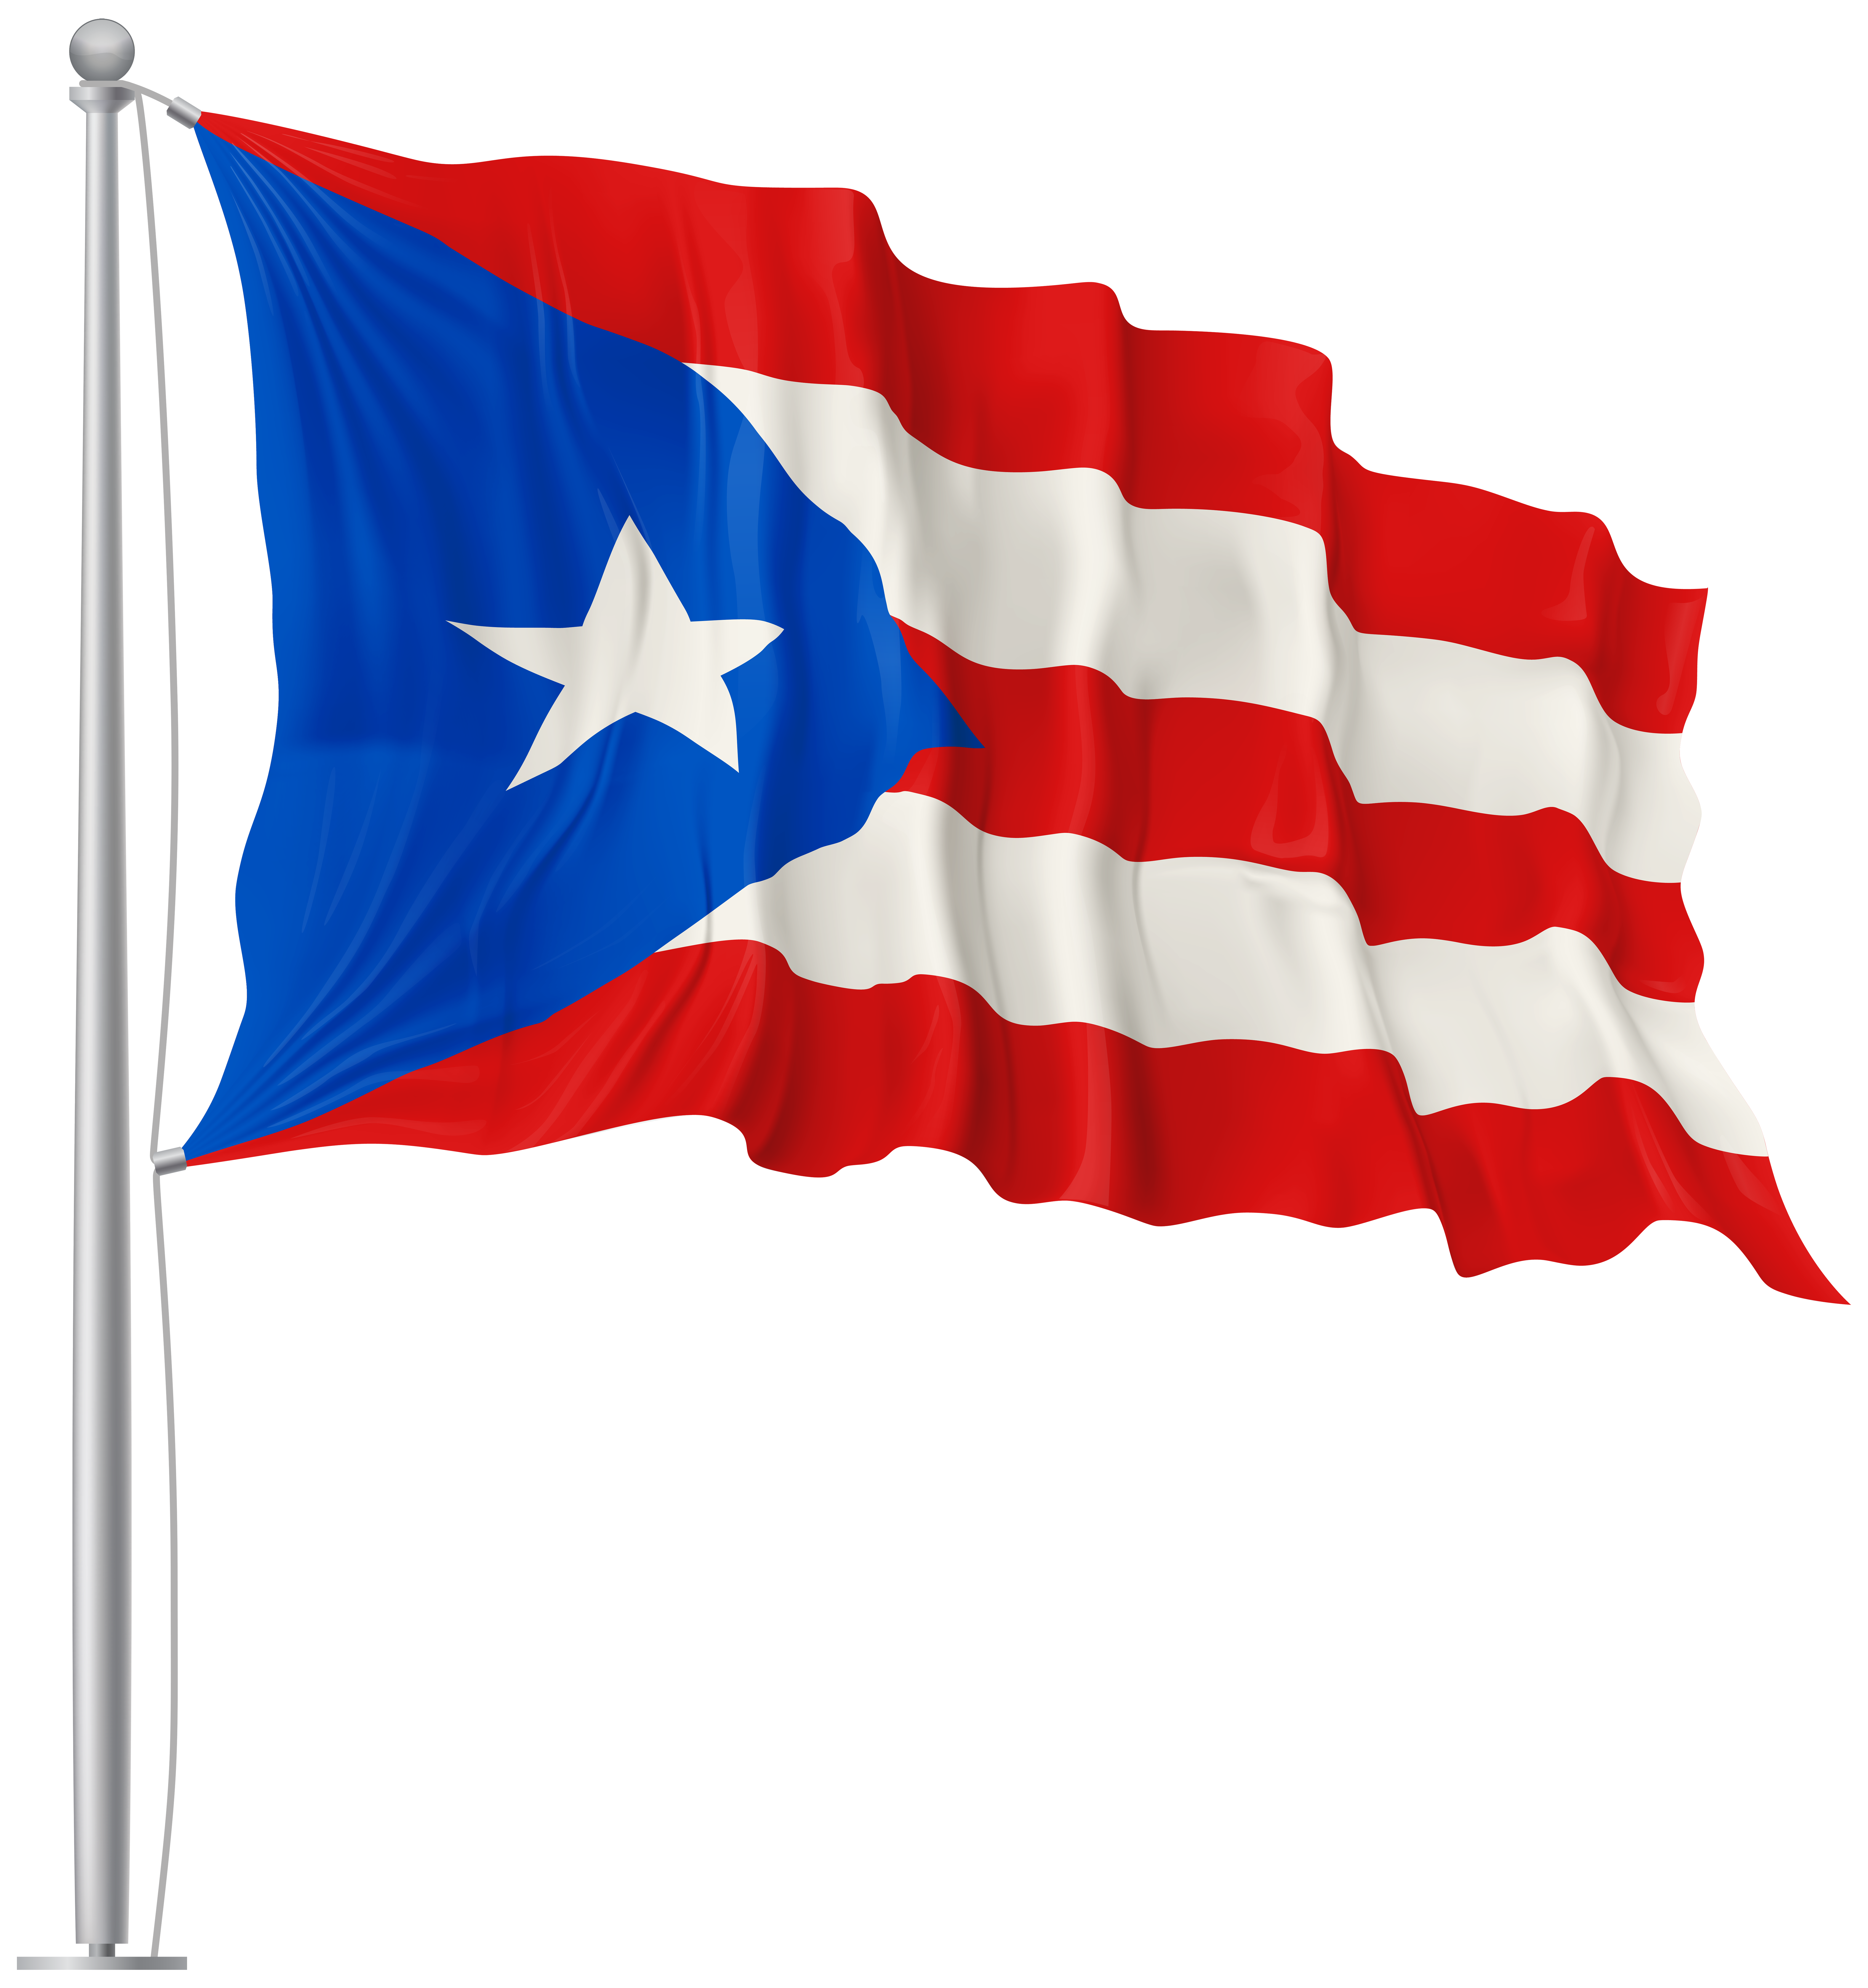 Puerto Rican Backgrounds Png Free Puerto Rican Backgrounds Png